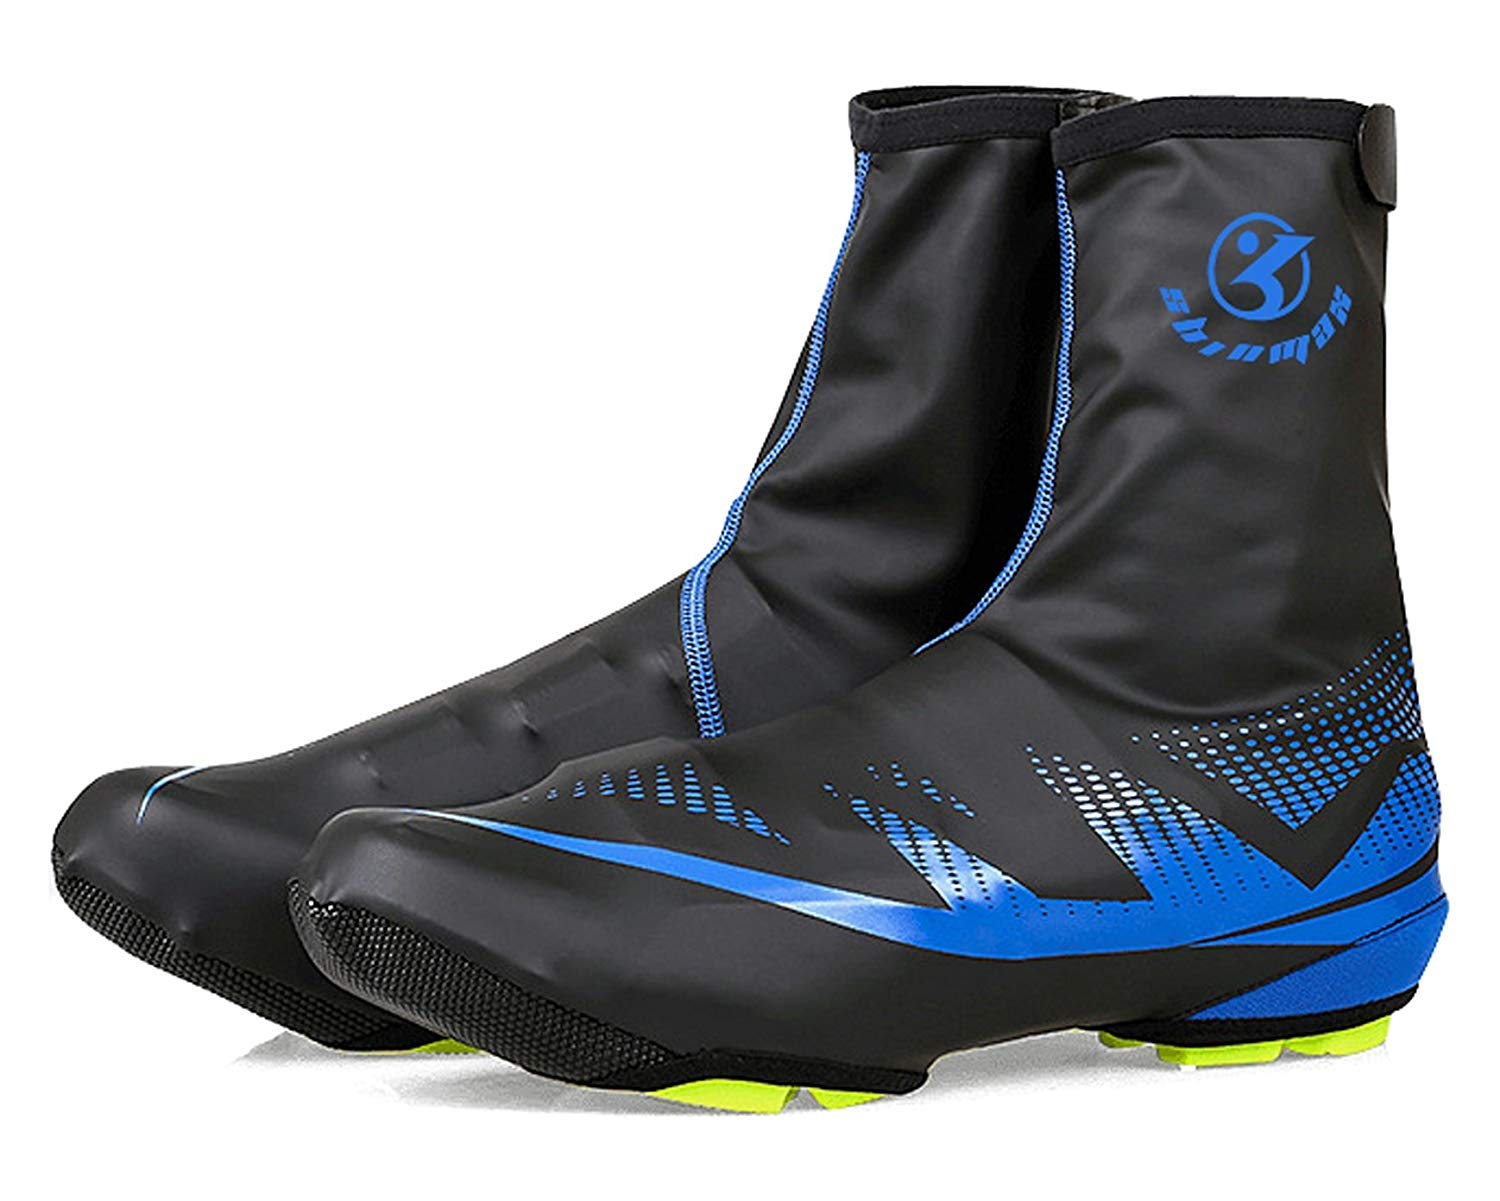 Bike Shoes Covers,A-Best Waterproof Overshoes Protector Shoe Feet Warmer Shoe Covers Bike Booties Cover for Men Women Outdoor Sports (Blue)